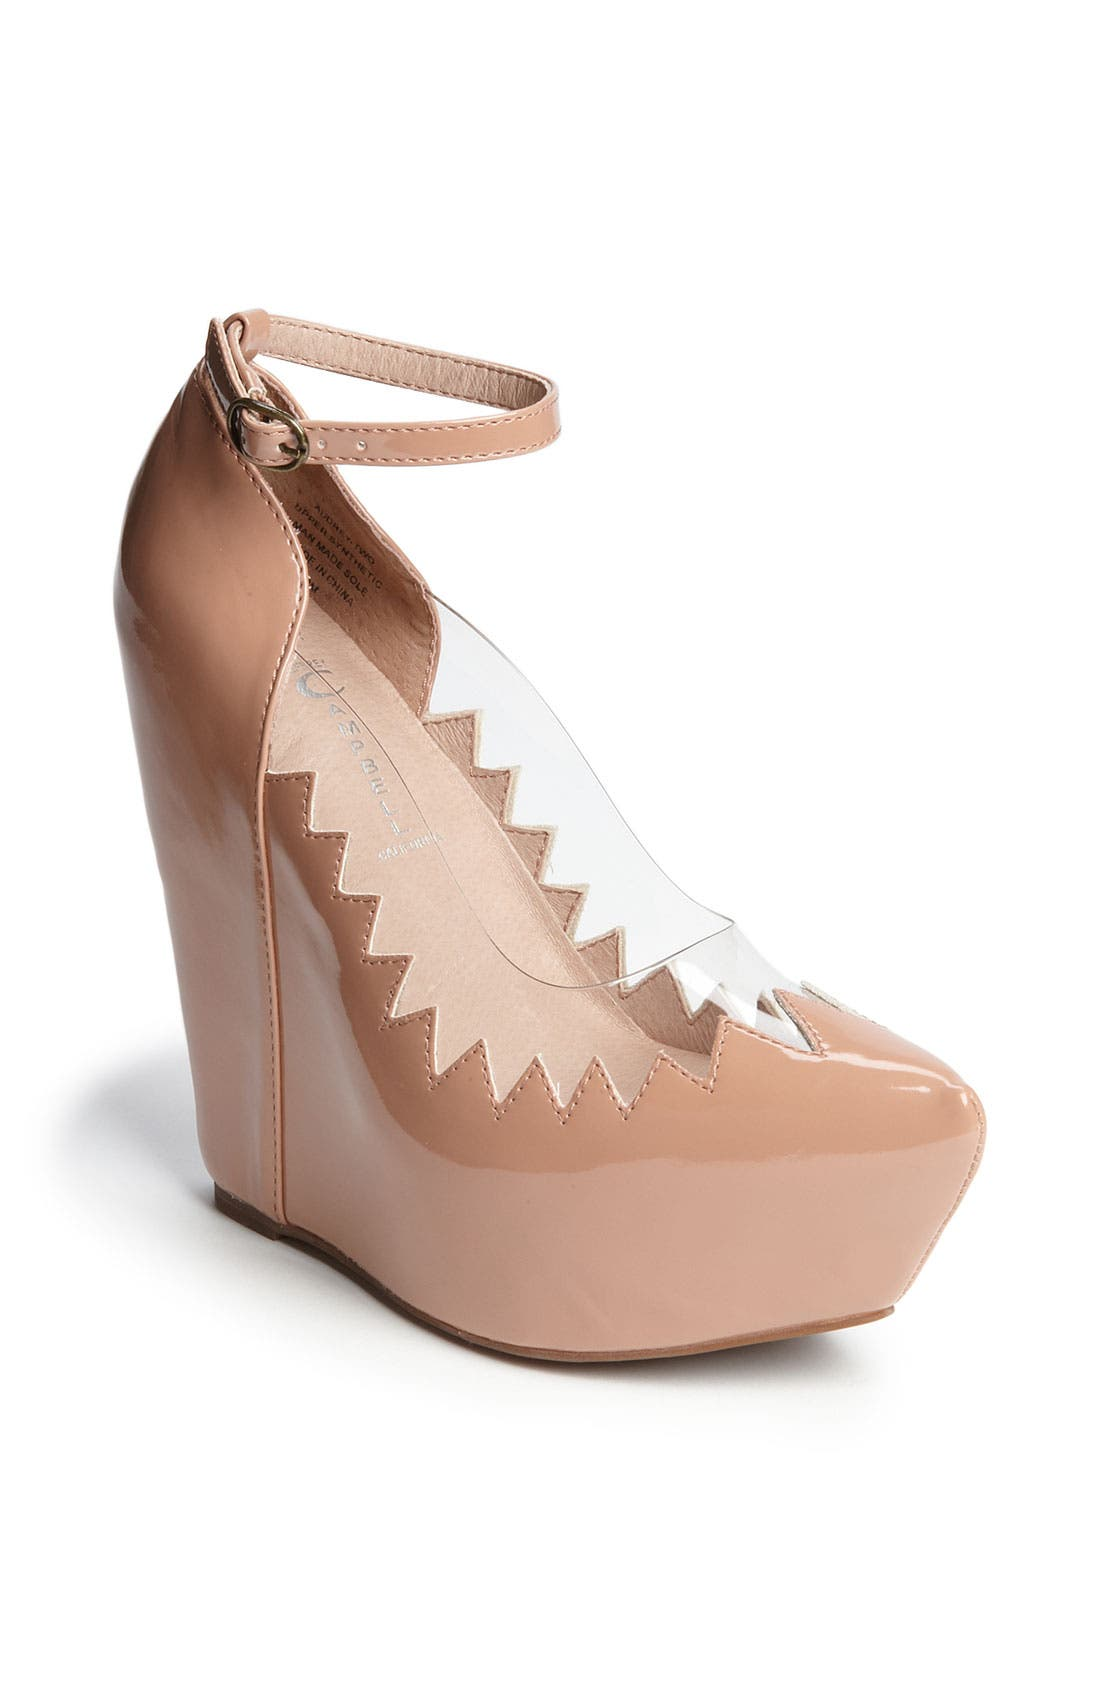 Main Image - Jeffrey Campbell 'Audrey' Pump